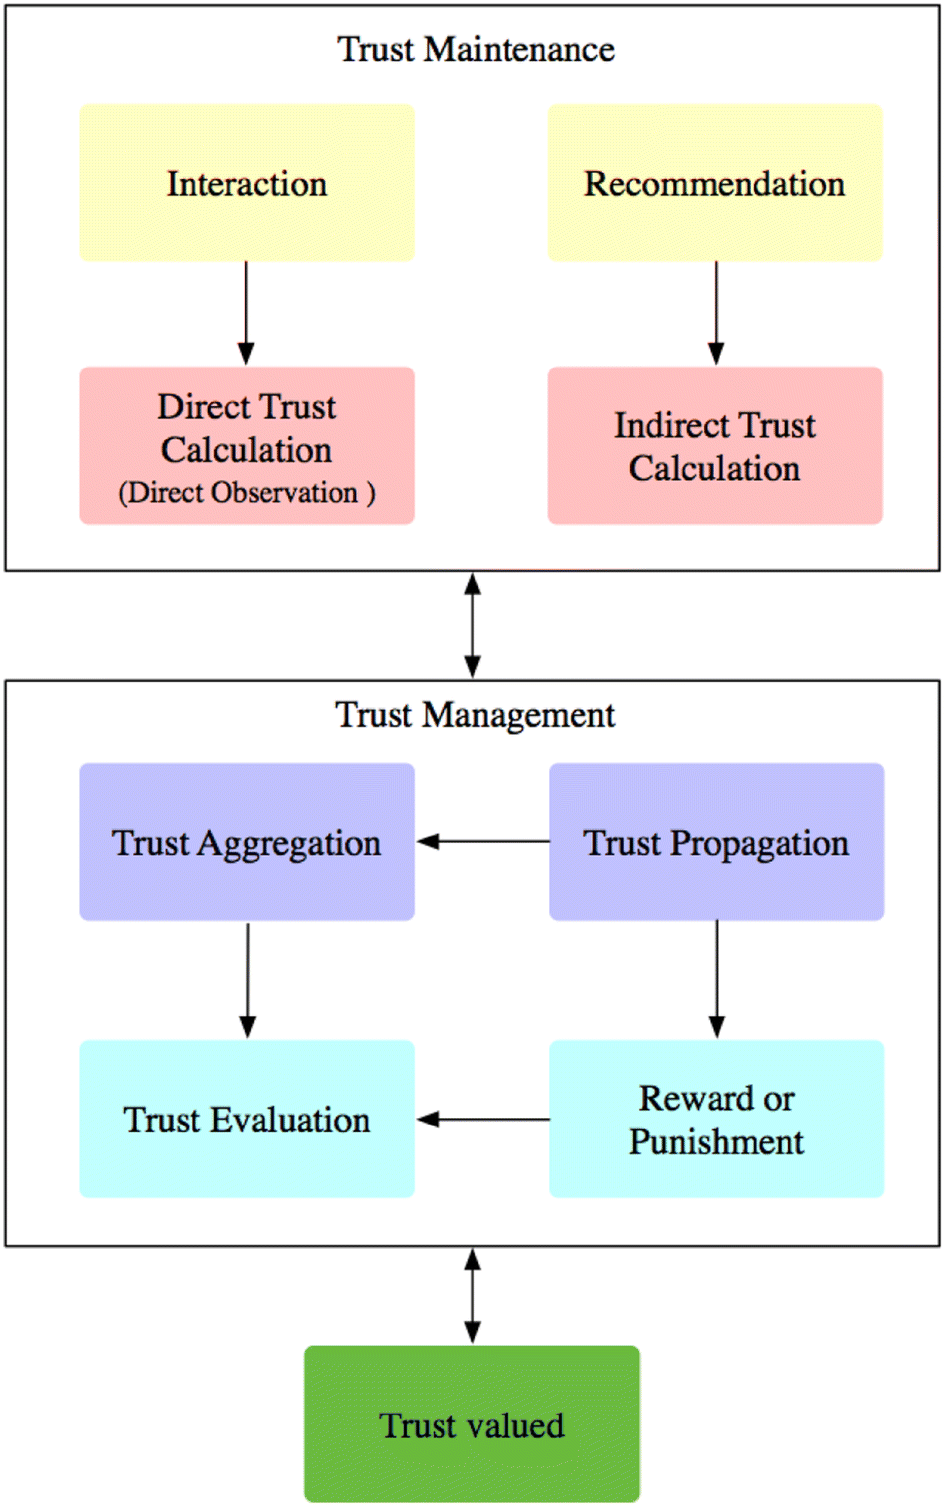 Trust-based recommendation systems in Internet of Things: a